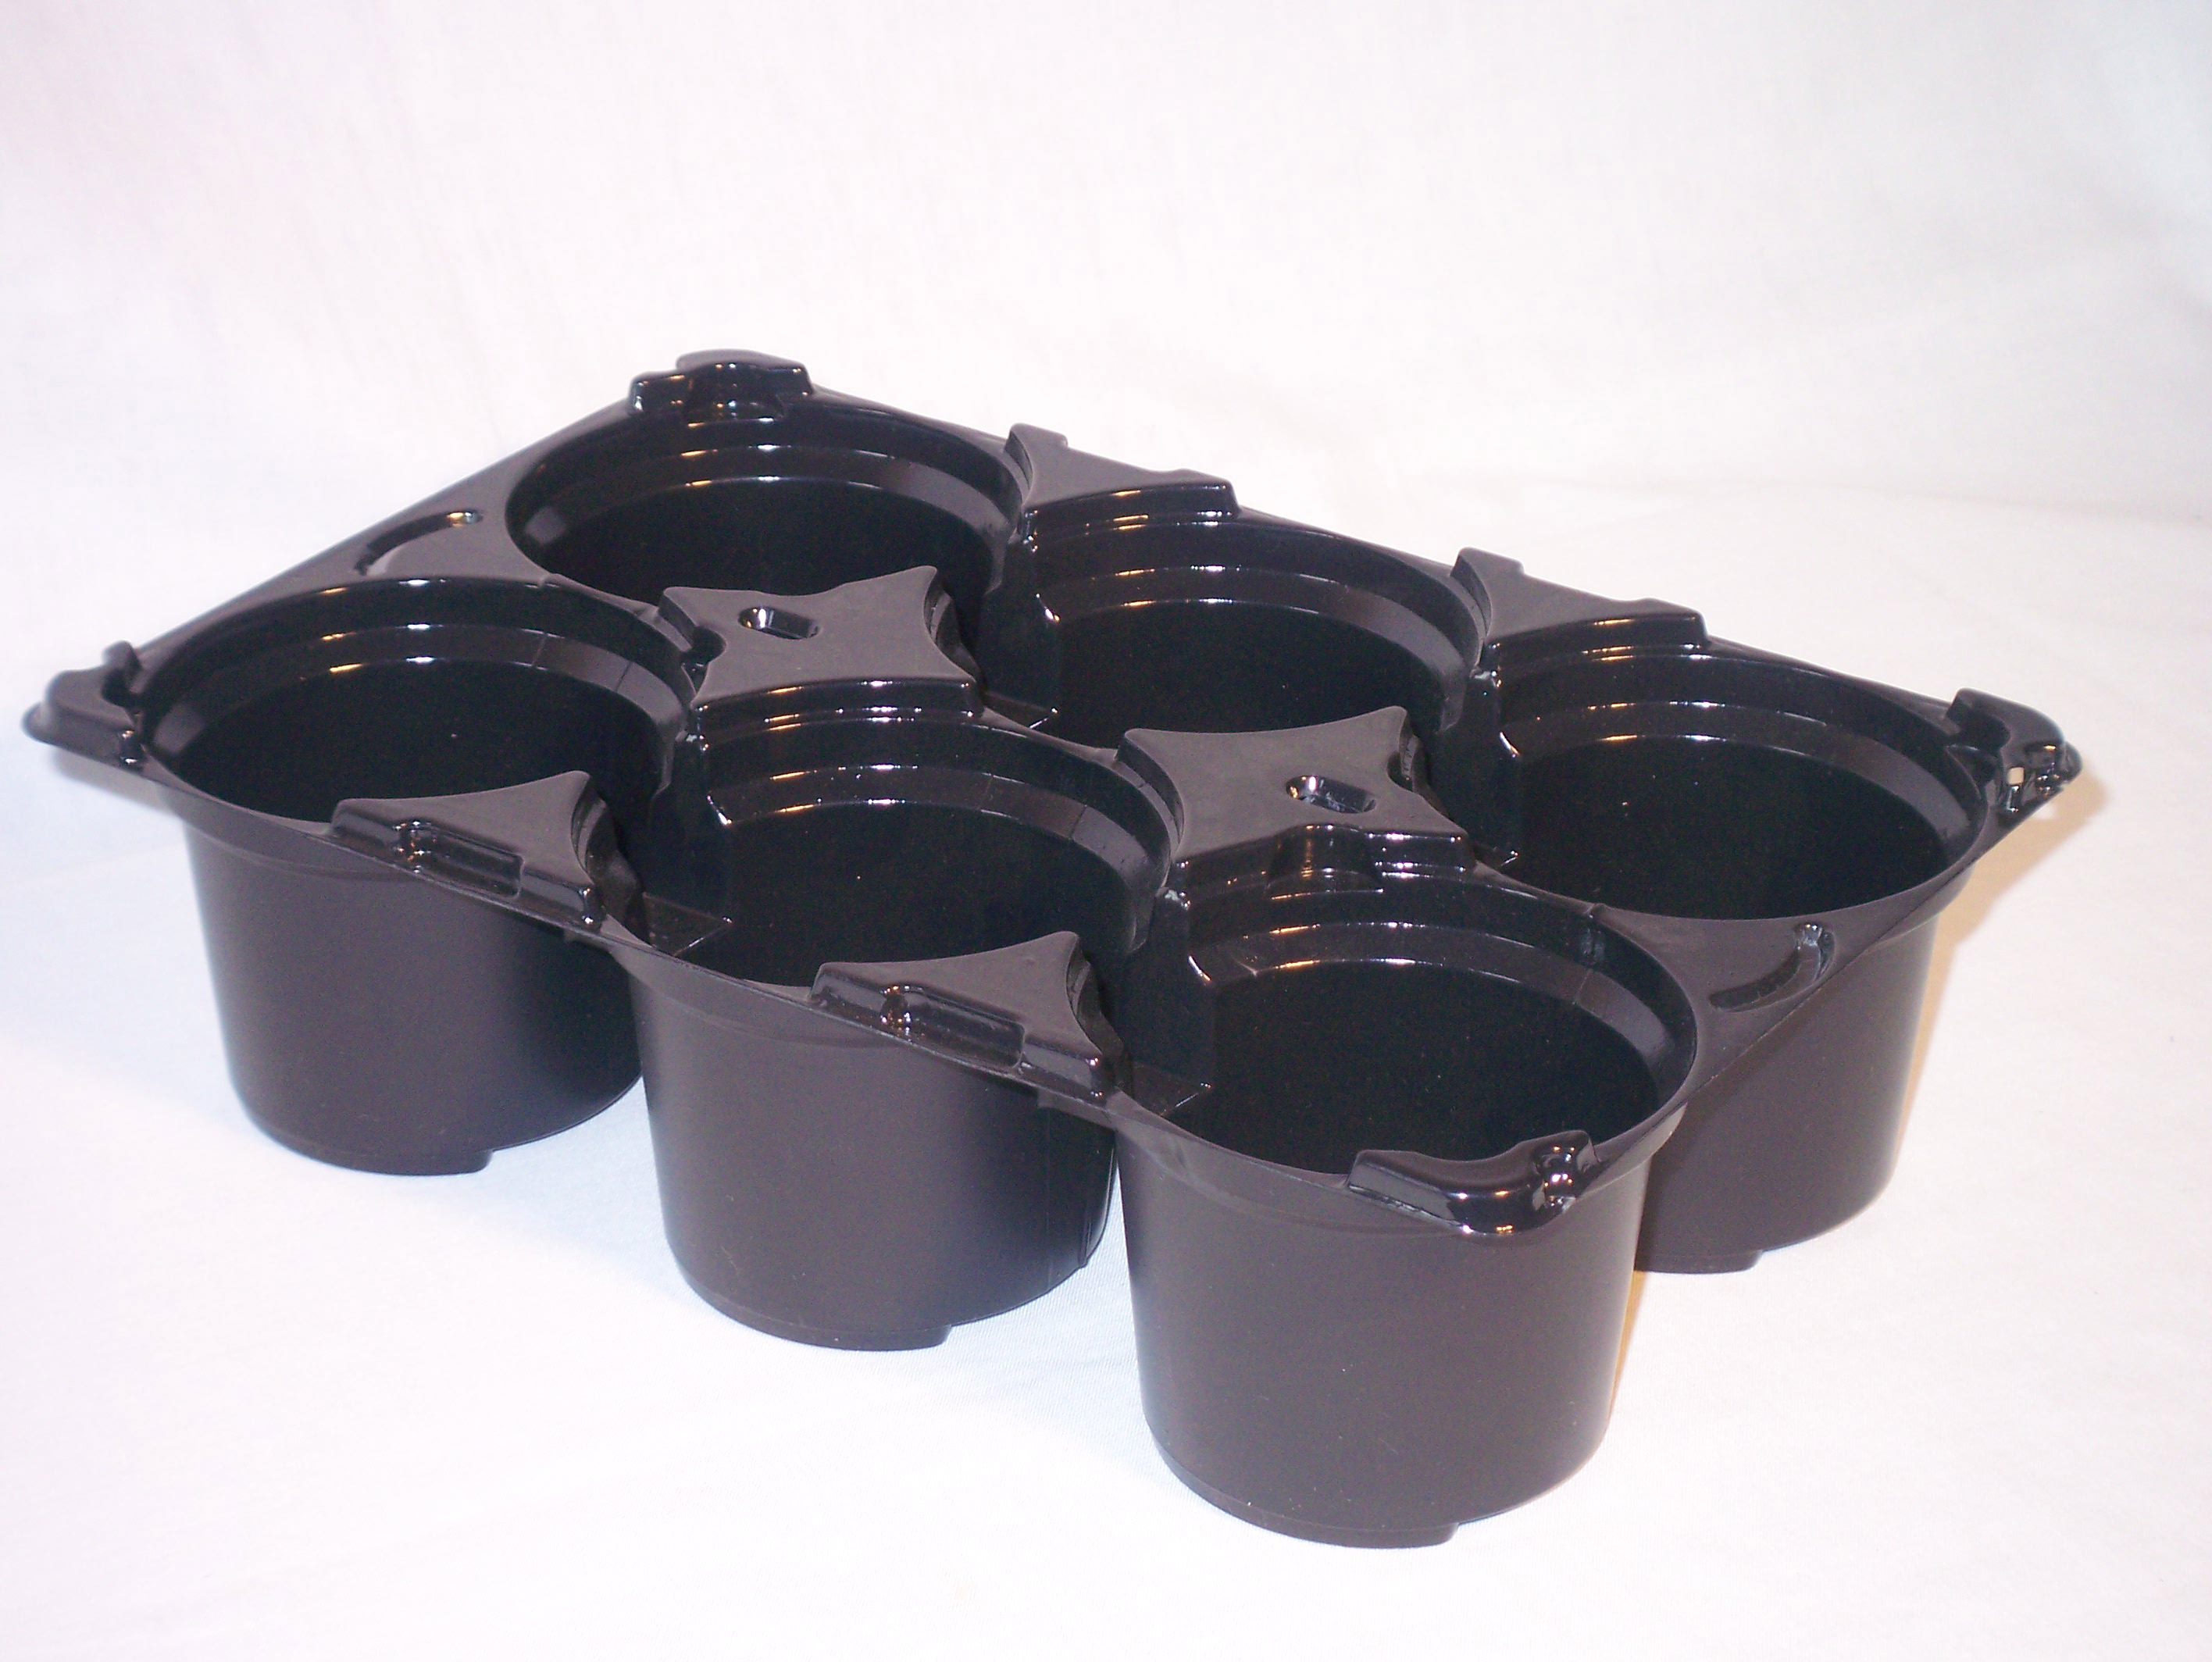 Carry Pack 6 x 10.5 cm round pots